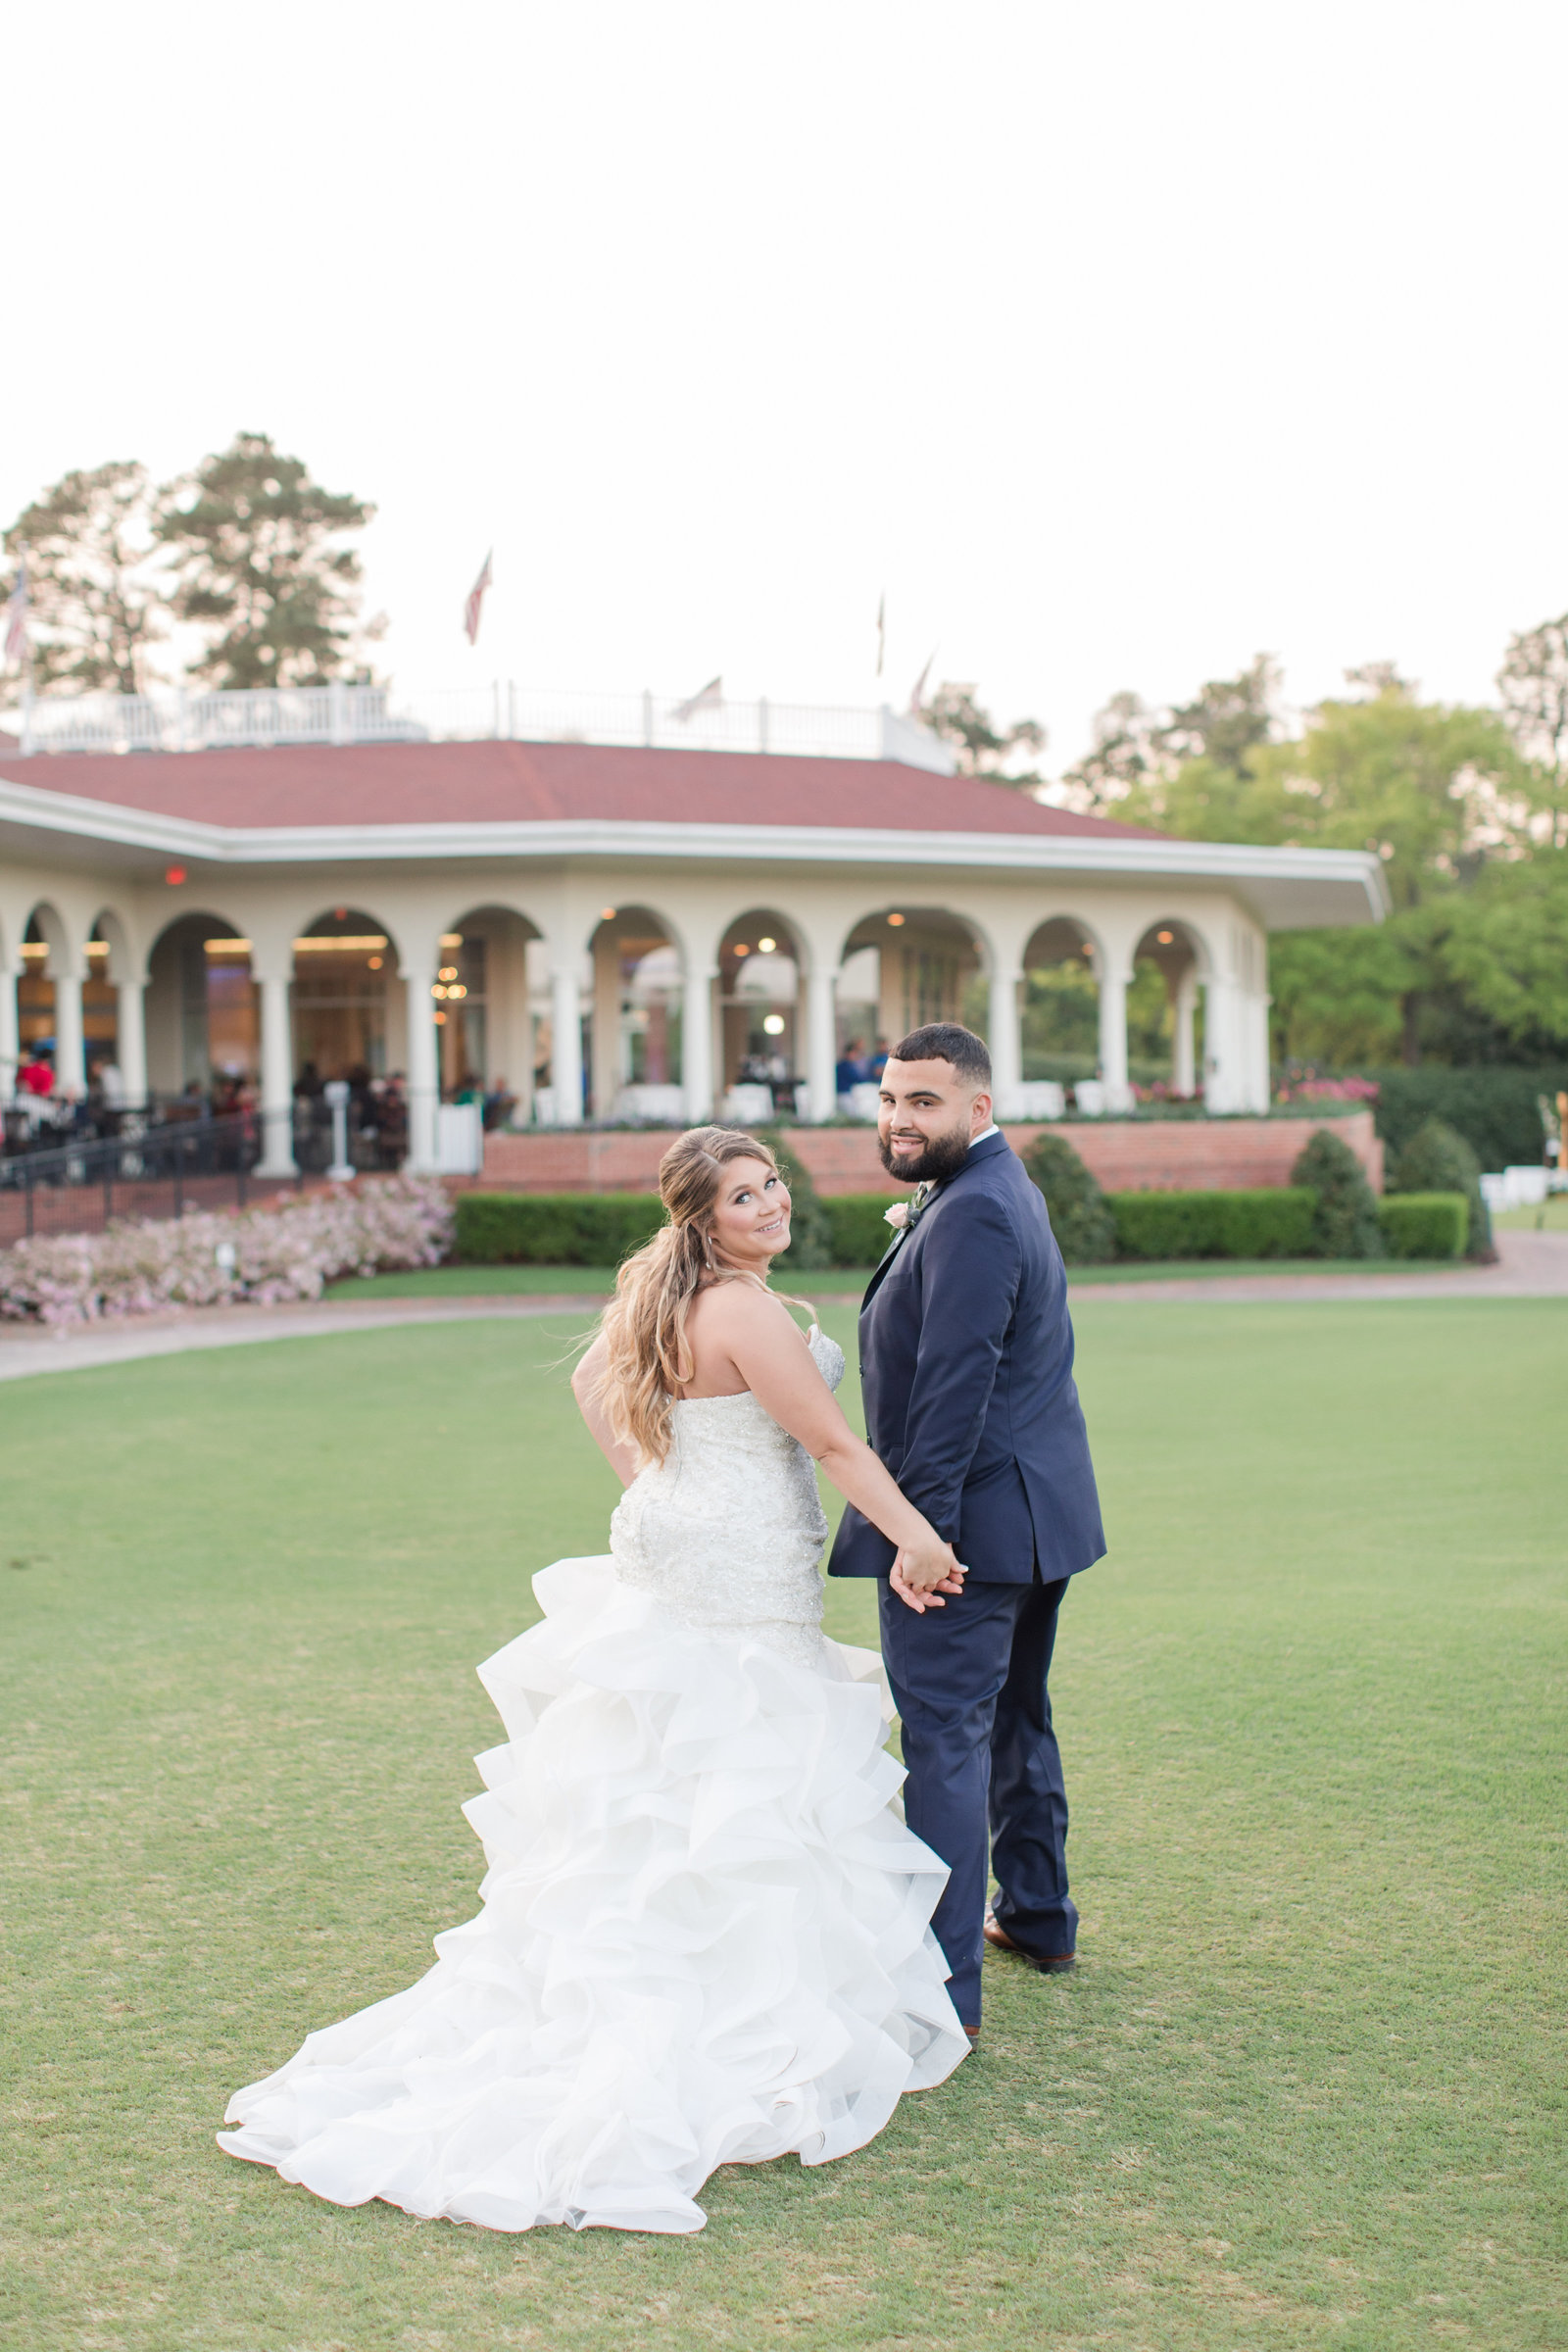 Jennifer_B_Photography-Pinehurst_Club-Pinehurst_NC-Wedding_Day-Caleb___Miranda-JB_Favs-2019-0236